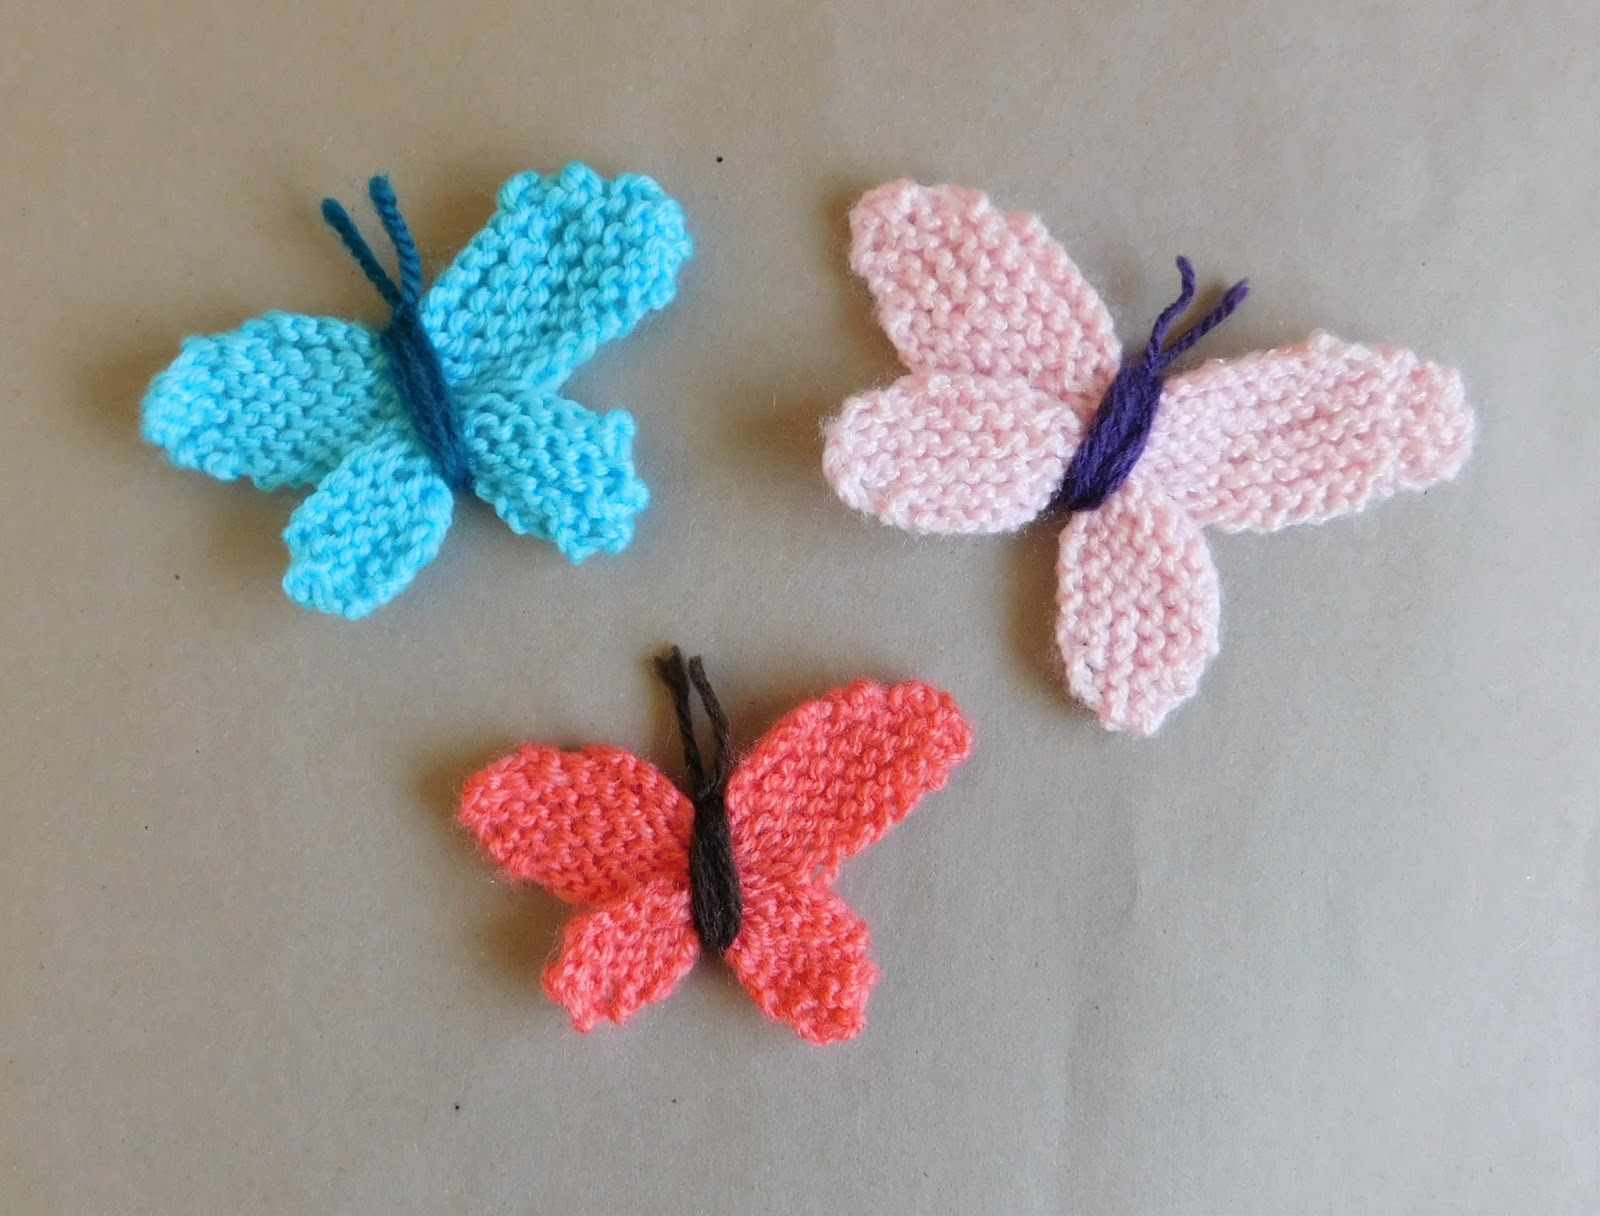 Knitting Pattern For Butterfly : mariannas lazy daisy days: Knitted Butterflies